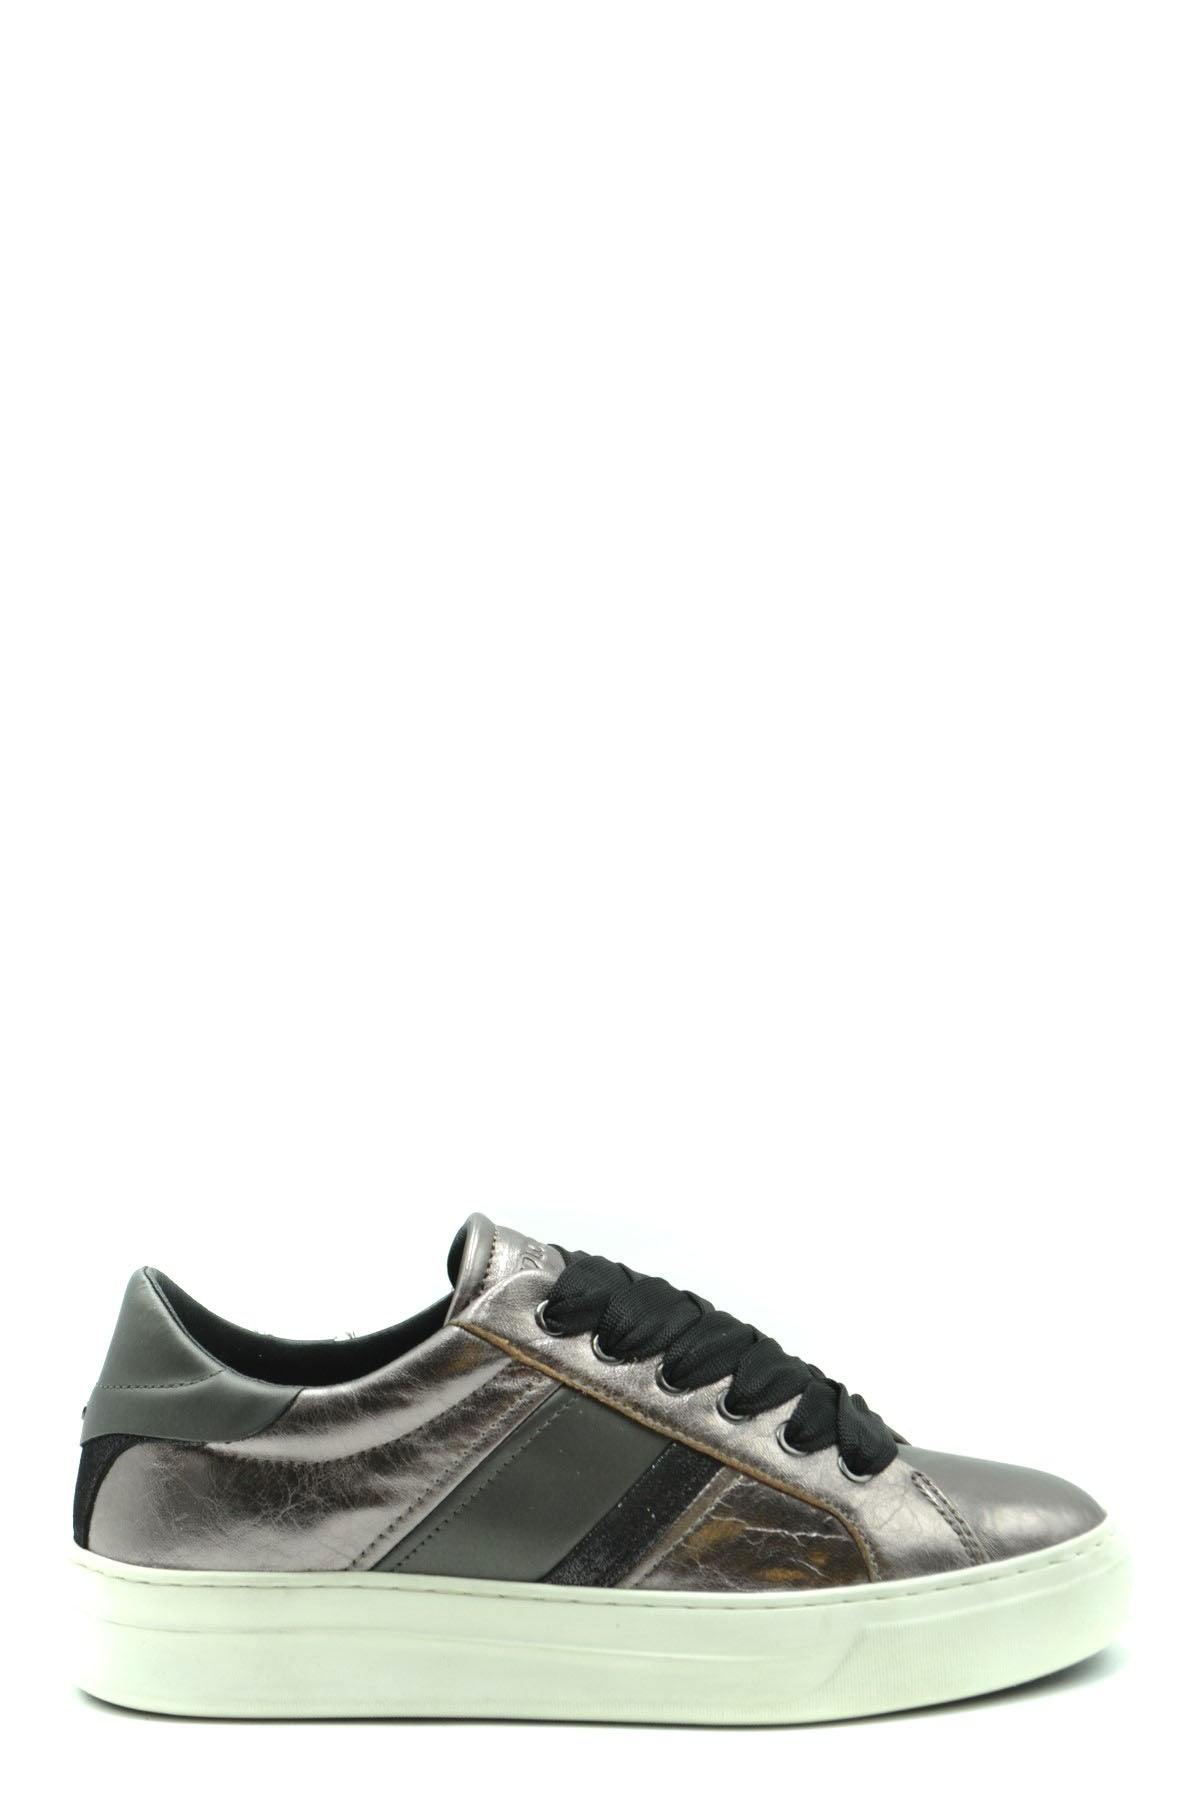 Shoes Crime London-Sports & Entertainment - Sneakers-36-Product Details Terms: New With LabelMain Color: BronzeType Of Accessory: ShoesSeason: Fall / WinterMade In: ItalyGender: WomanSize: EuComposition: Leather 100%Year: 2020Manufacturer Part Number: 25221Aa1.23-Keyomi-Sook